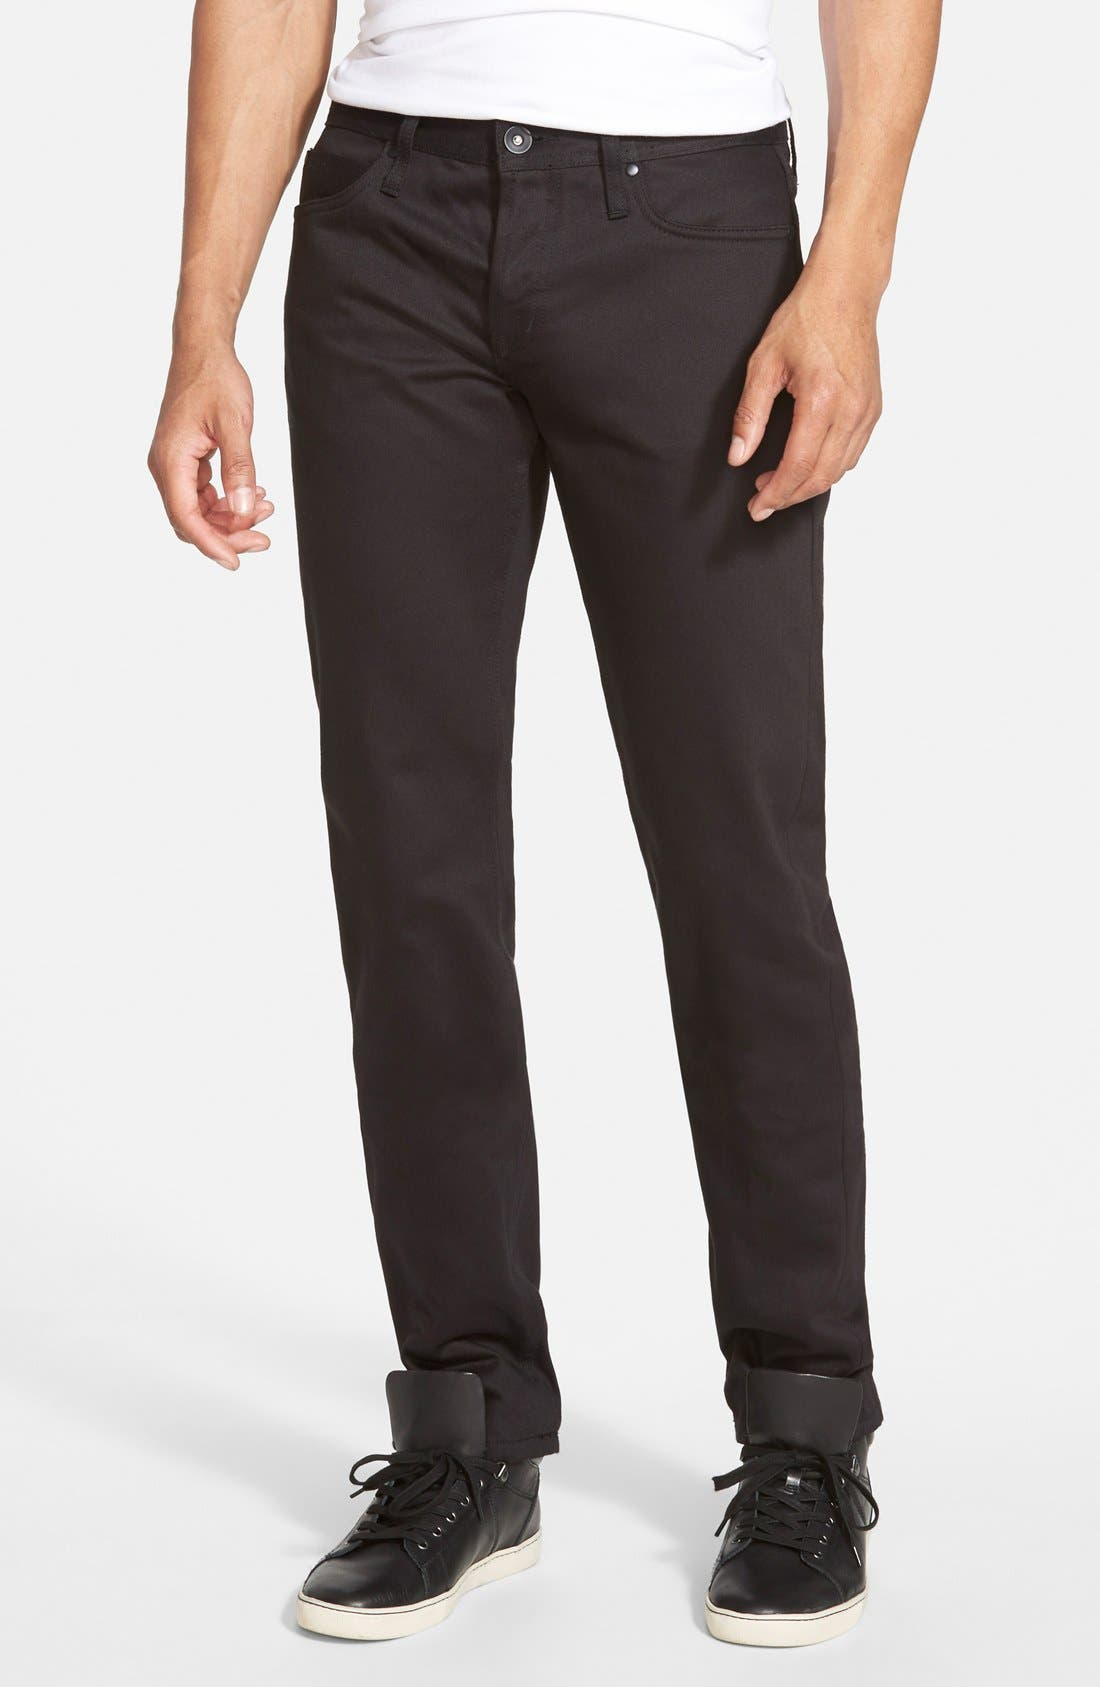 'UB155' Skinny Fit Raw Selvedge Jeans,                             Main thumbnail 1, color,                             001